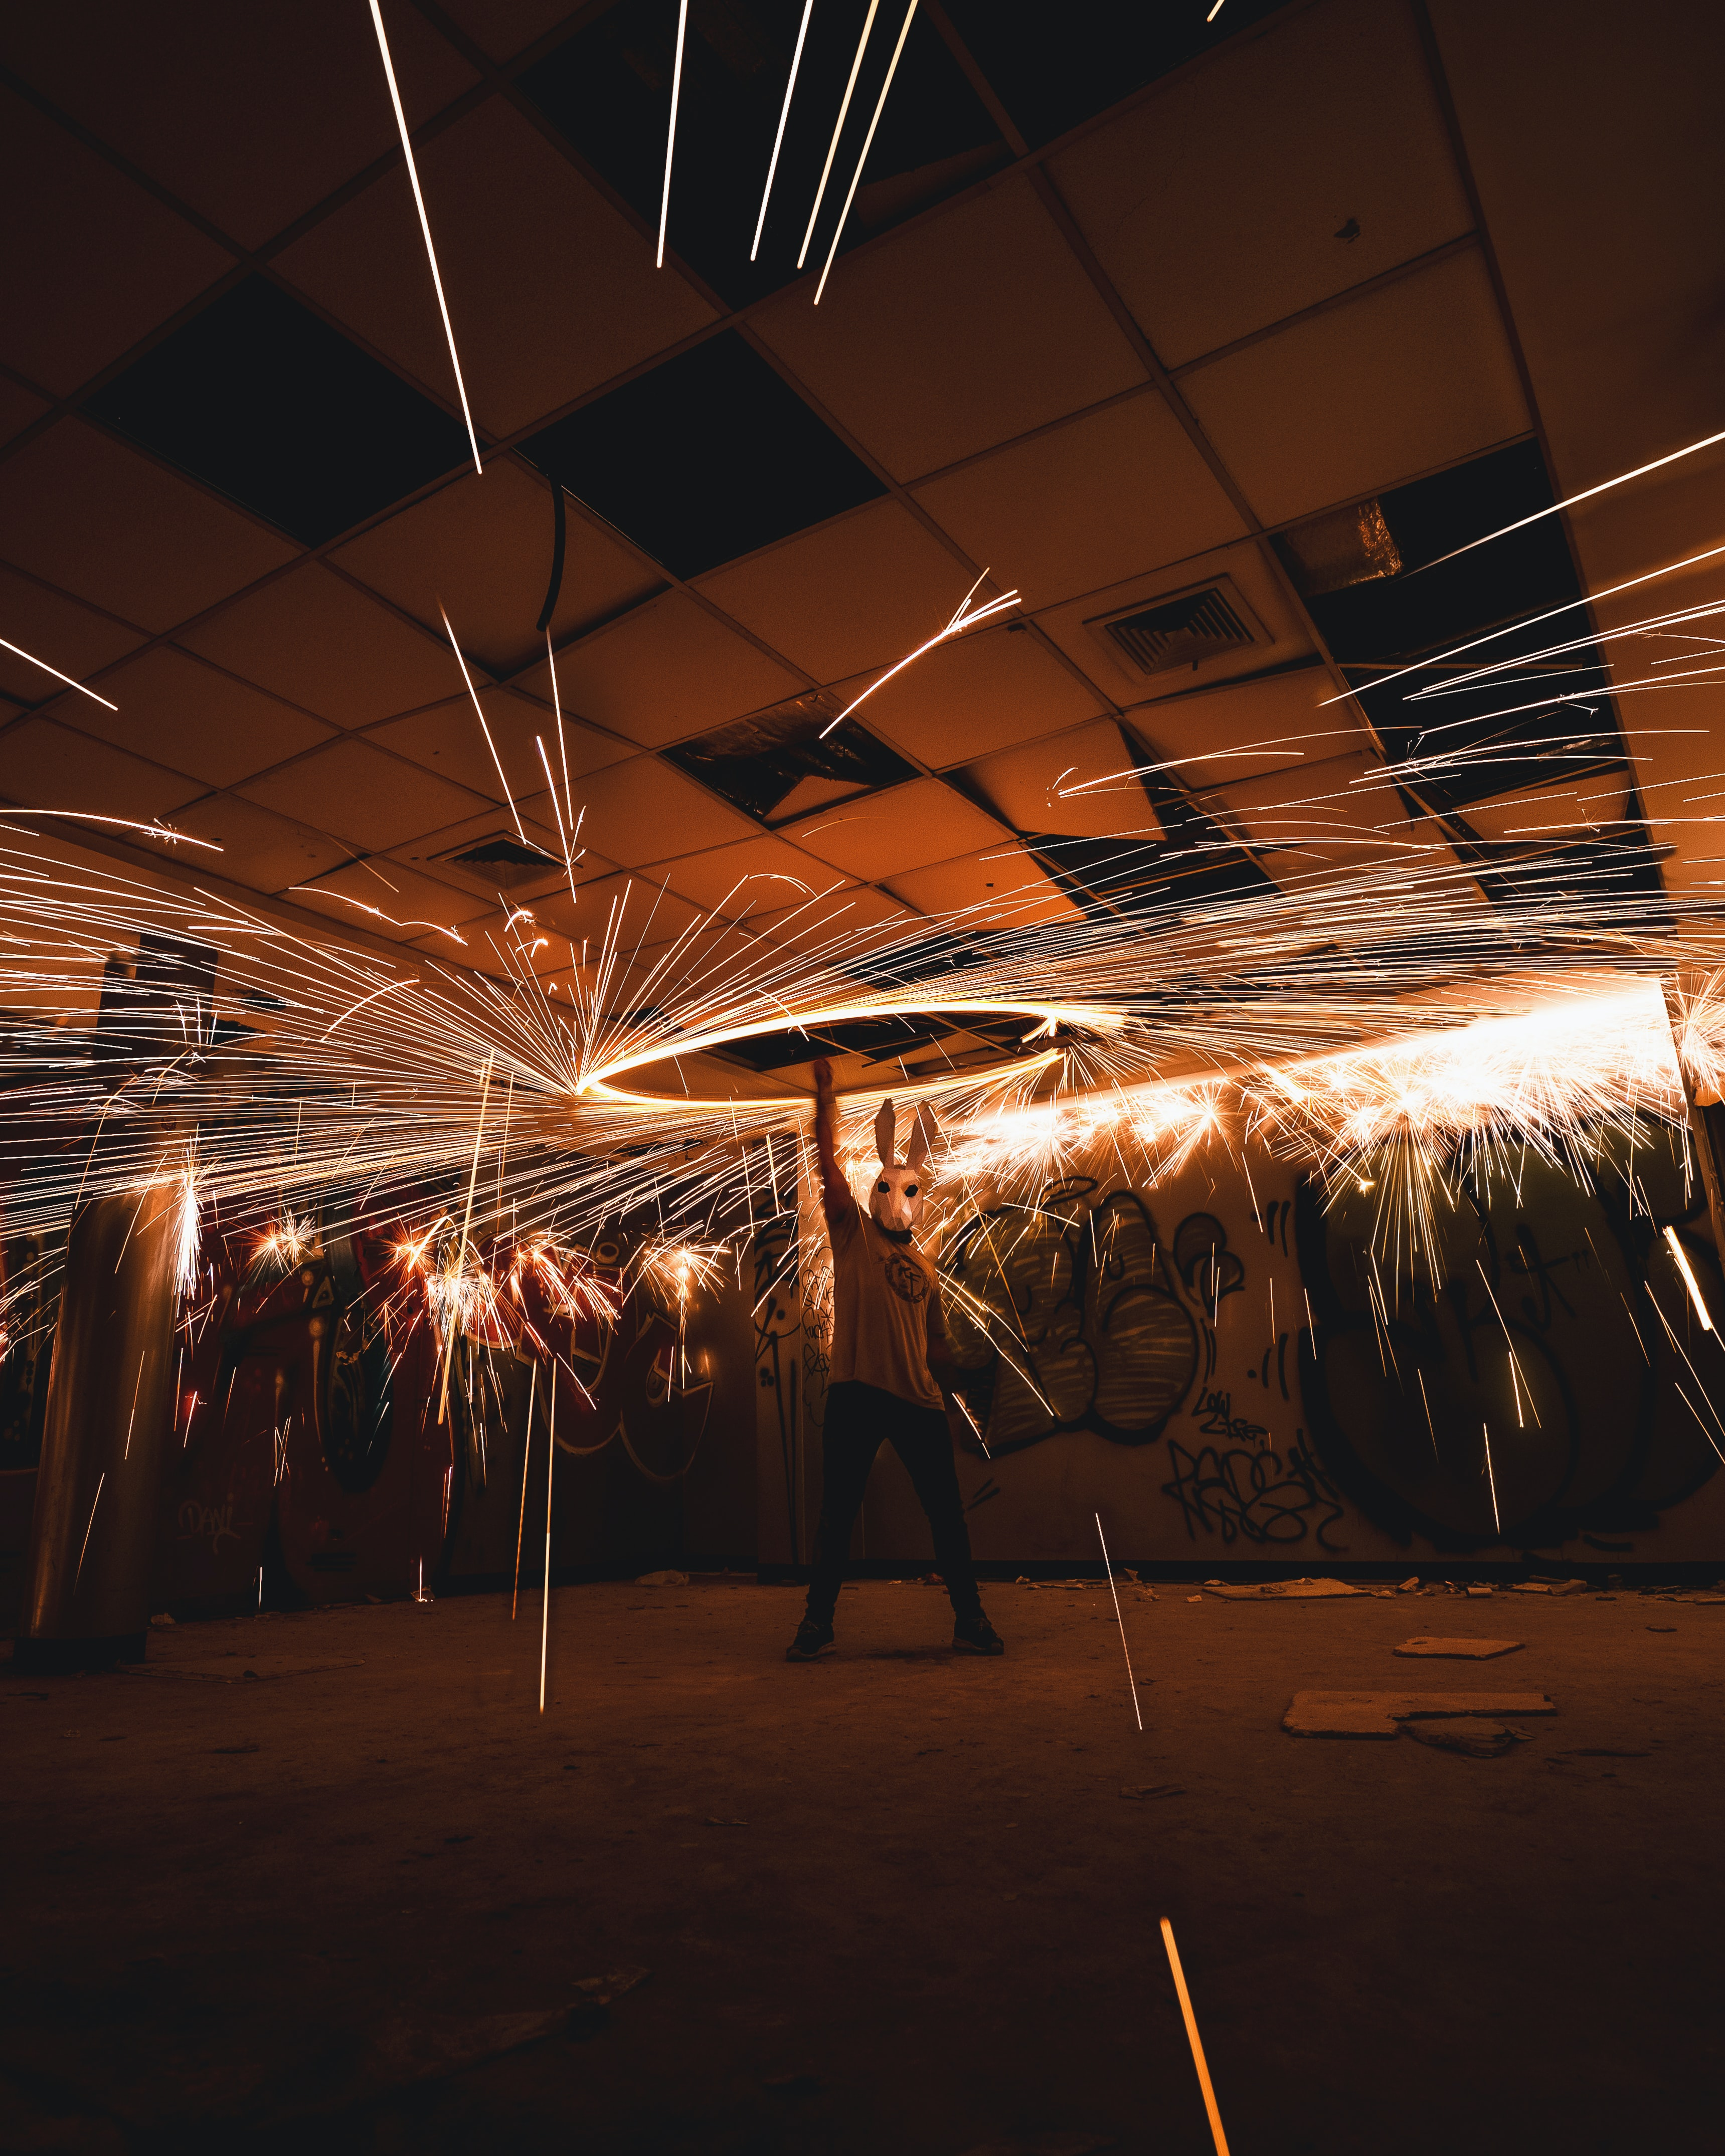 man holding steel wool in room